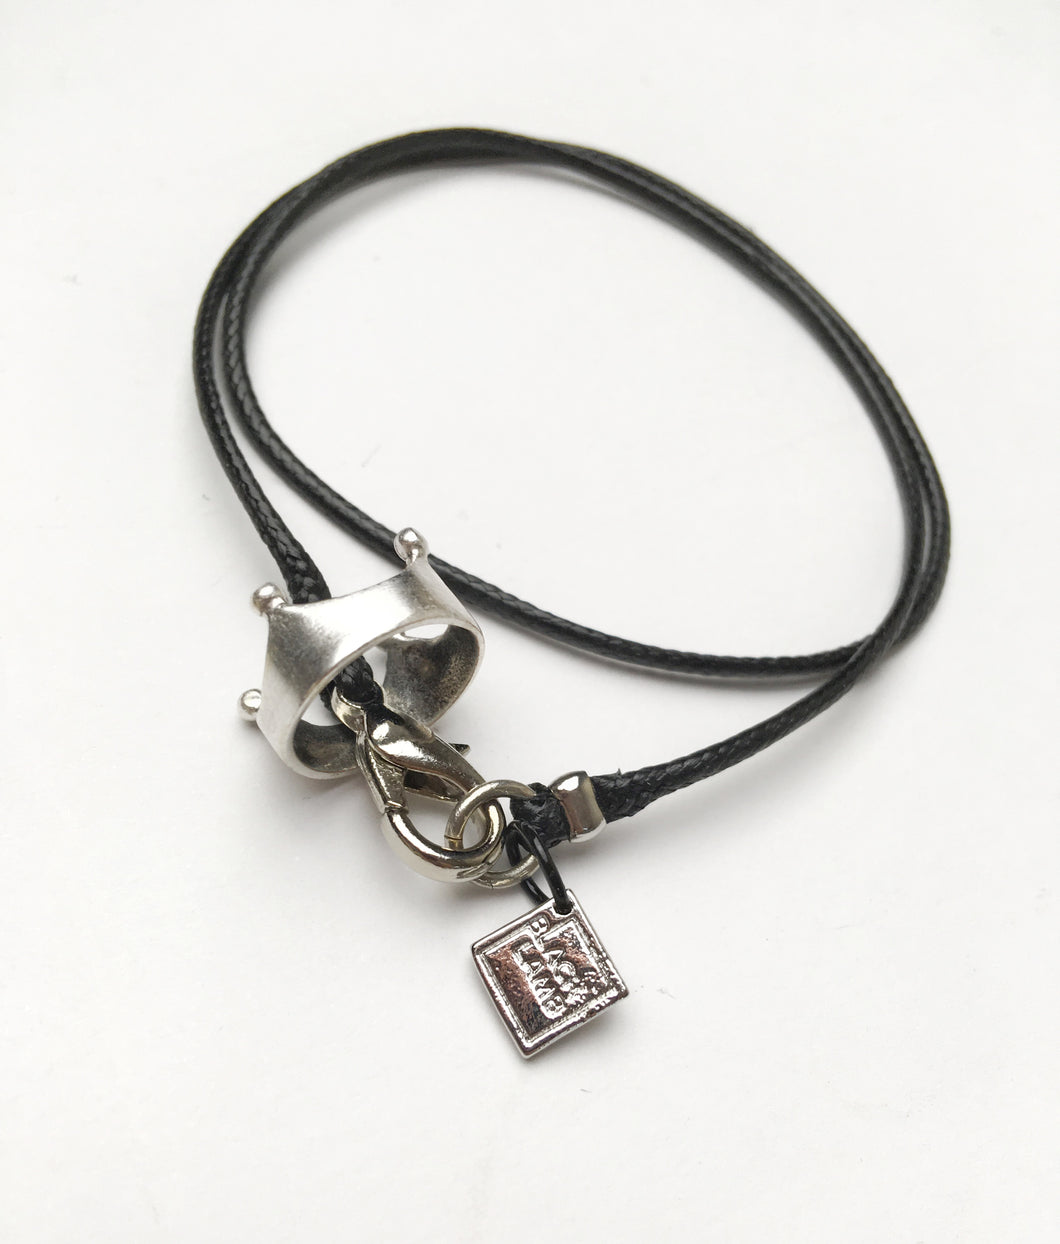 King on Cord Necklace